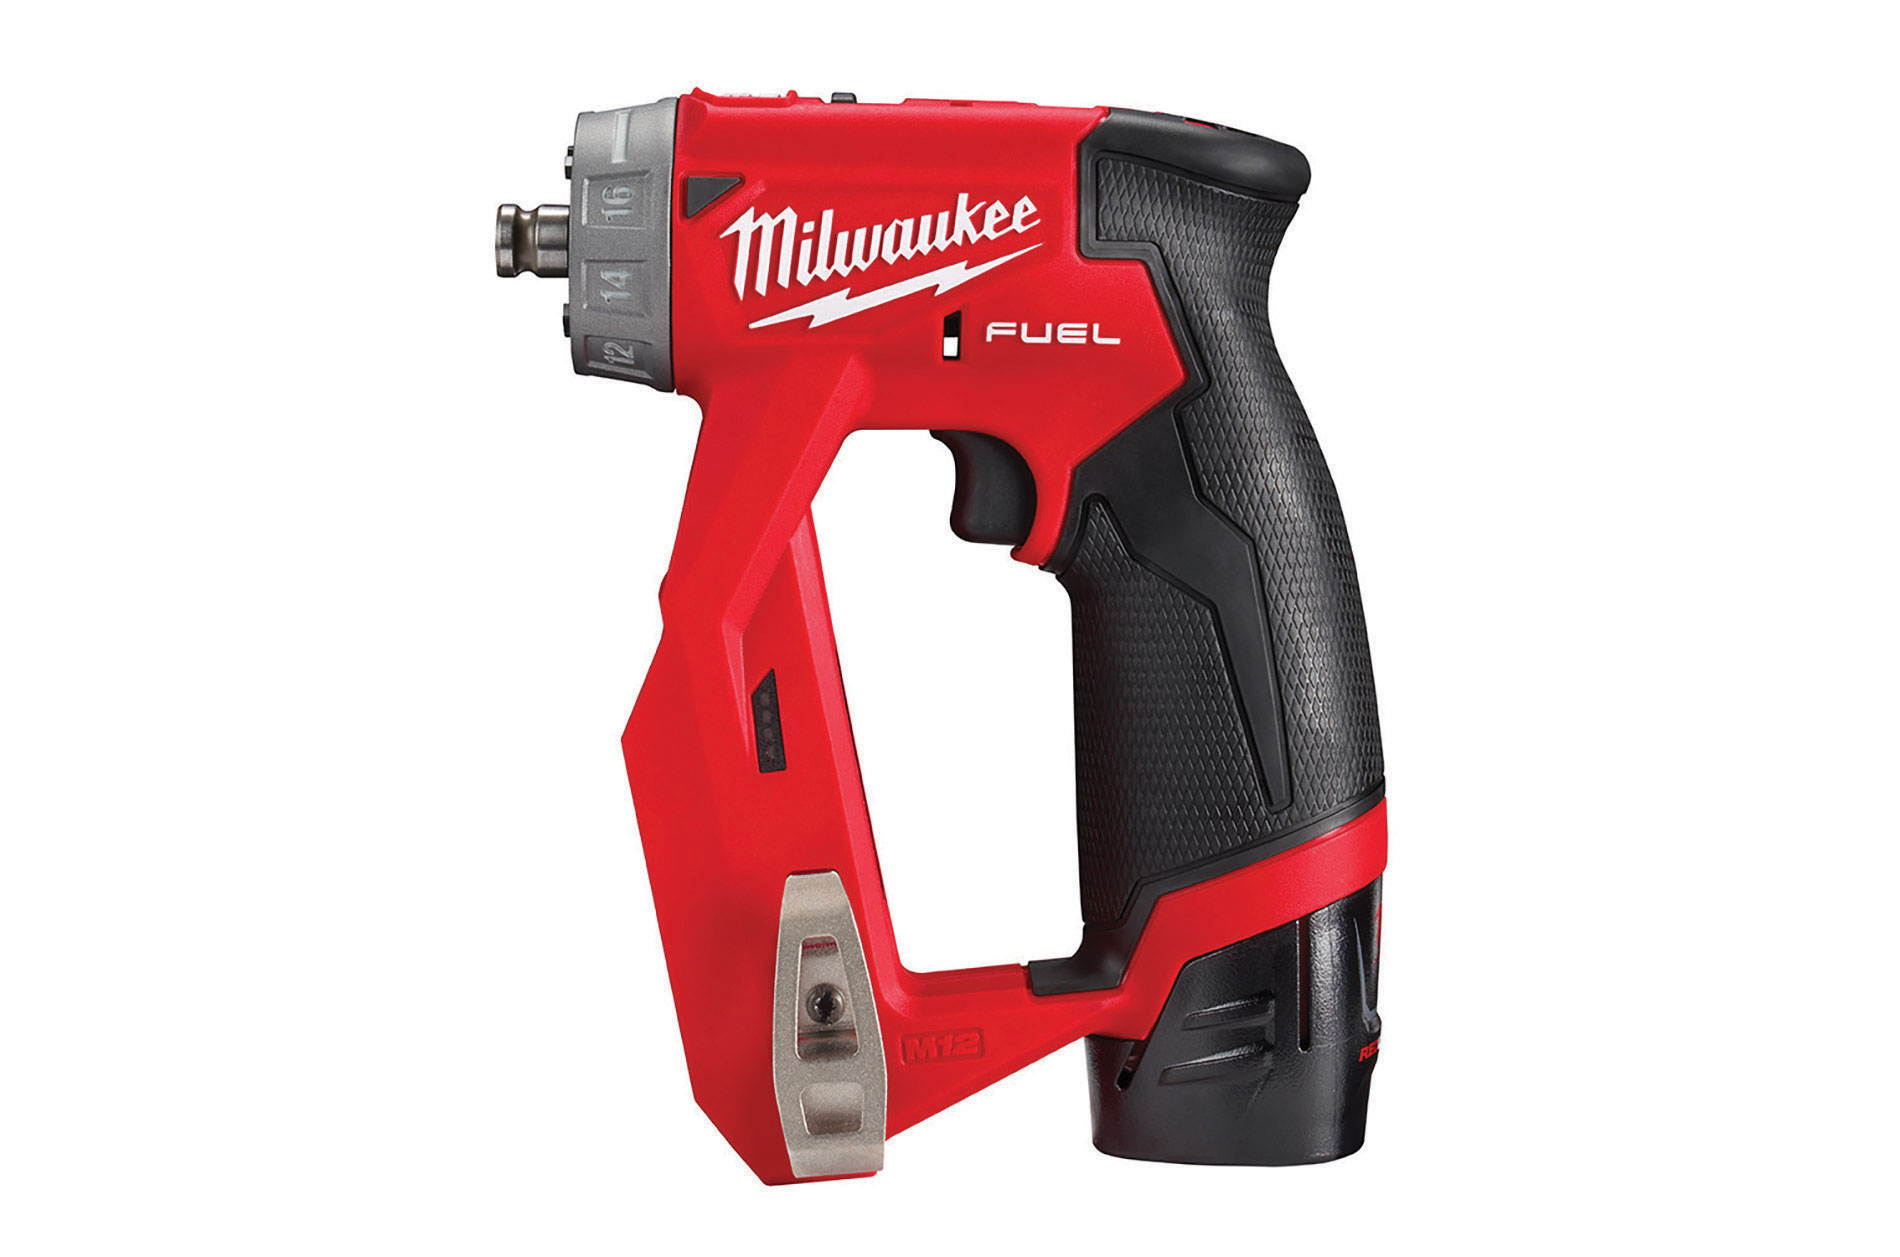 Milwaukee Tool's M12 Drill/Driver